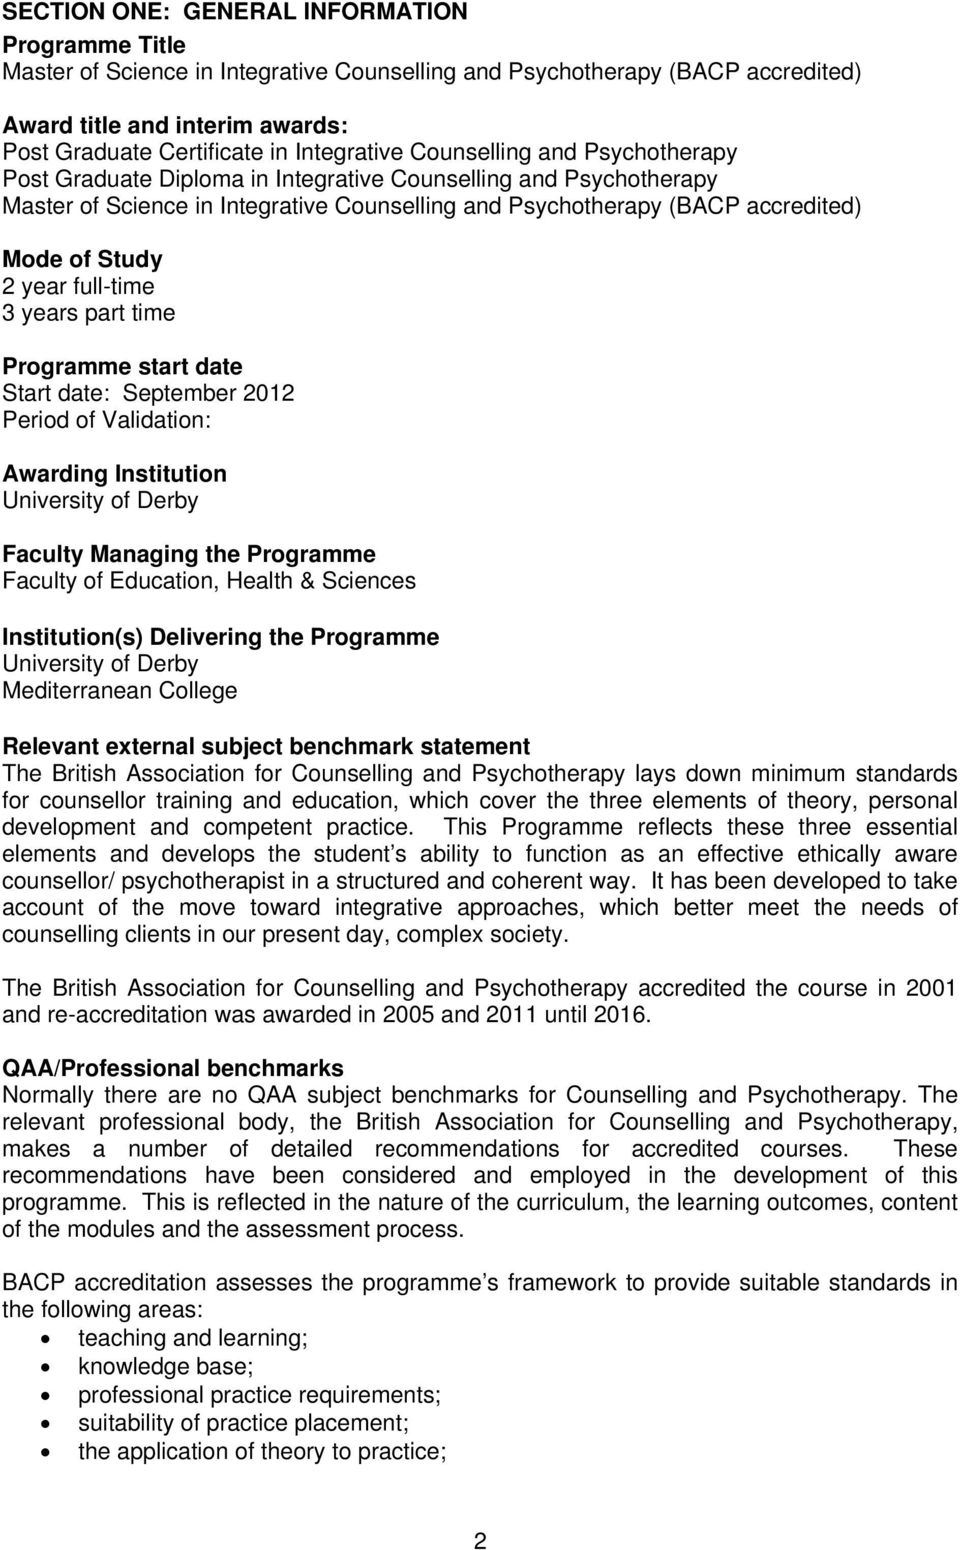 Study 2 year full-time 3 years part time Programme start date Start date: September 2012 Period of Validation: Awarding Institution University of Derby Faculty Managing the Programme Faculty of